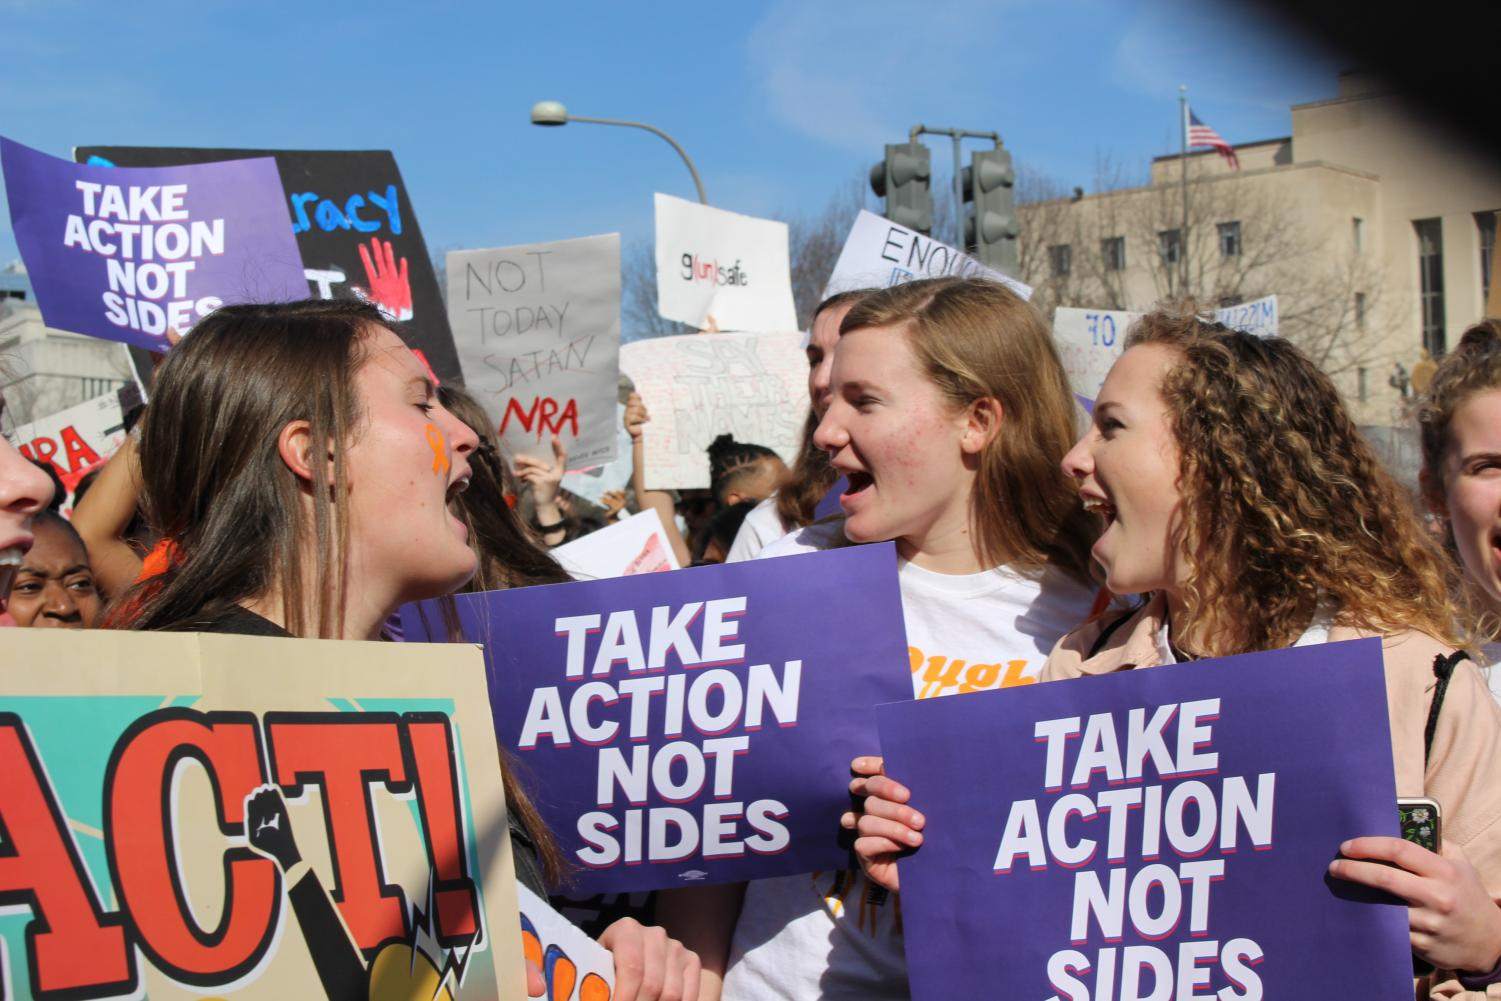 Juniors Darsey Trudo, Edie Lamantia and Ellie Lamantia shout during 2019's walkout against gun violence and march down Pennsylvania Avenue. Trudo was one of four juniors who planned the school's participation in the walkout.